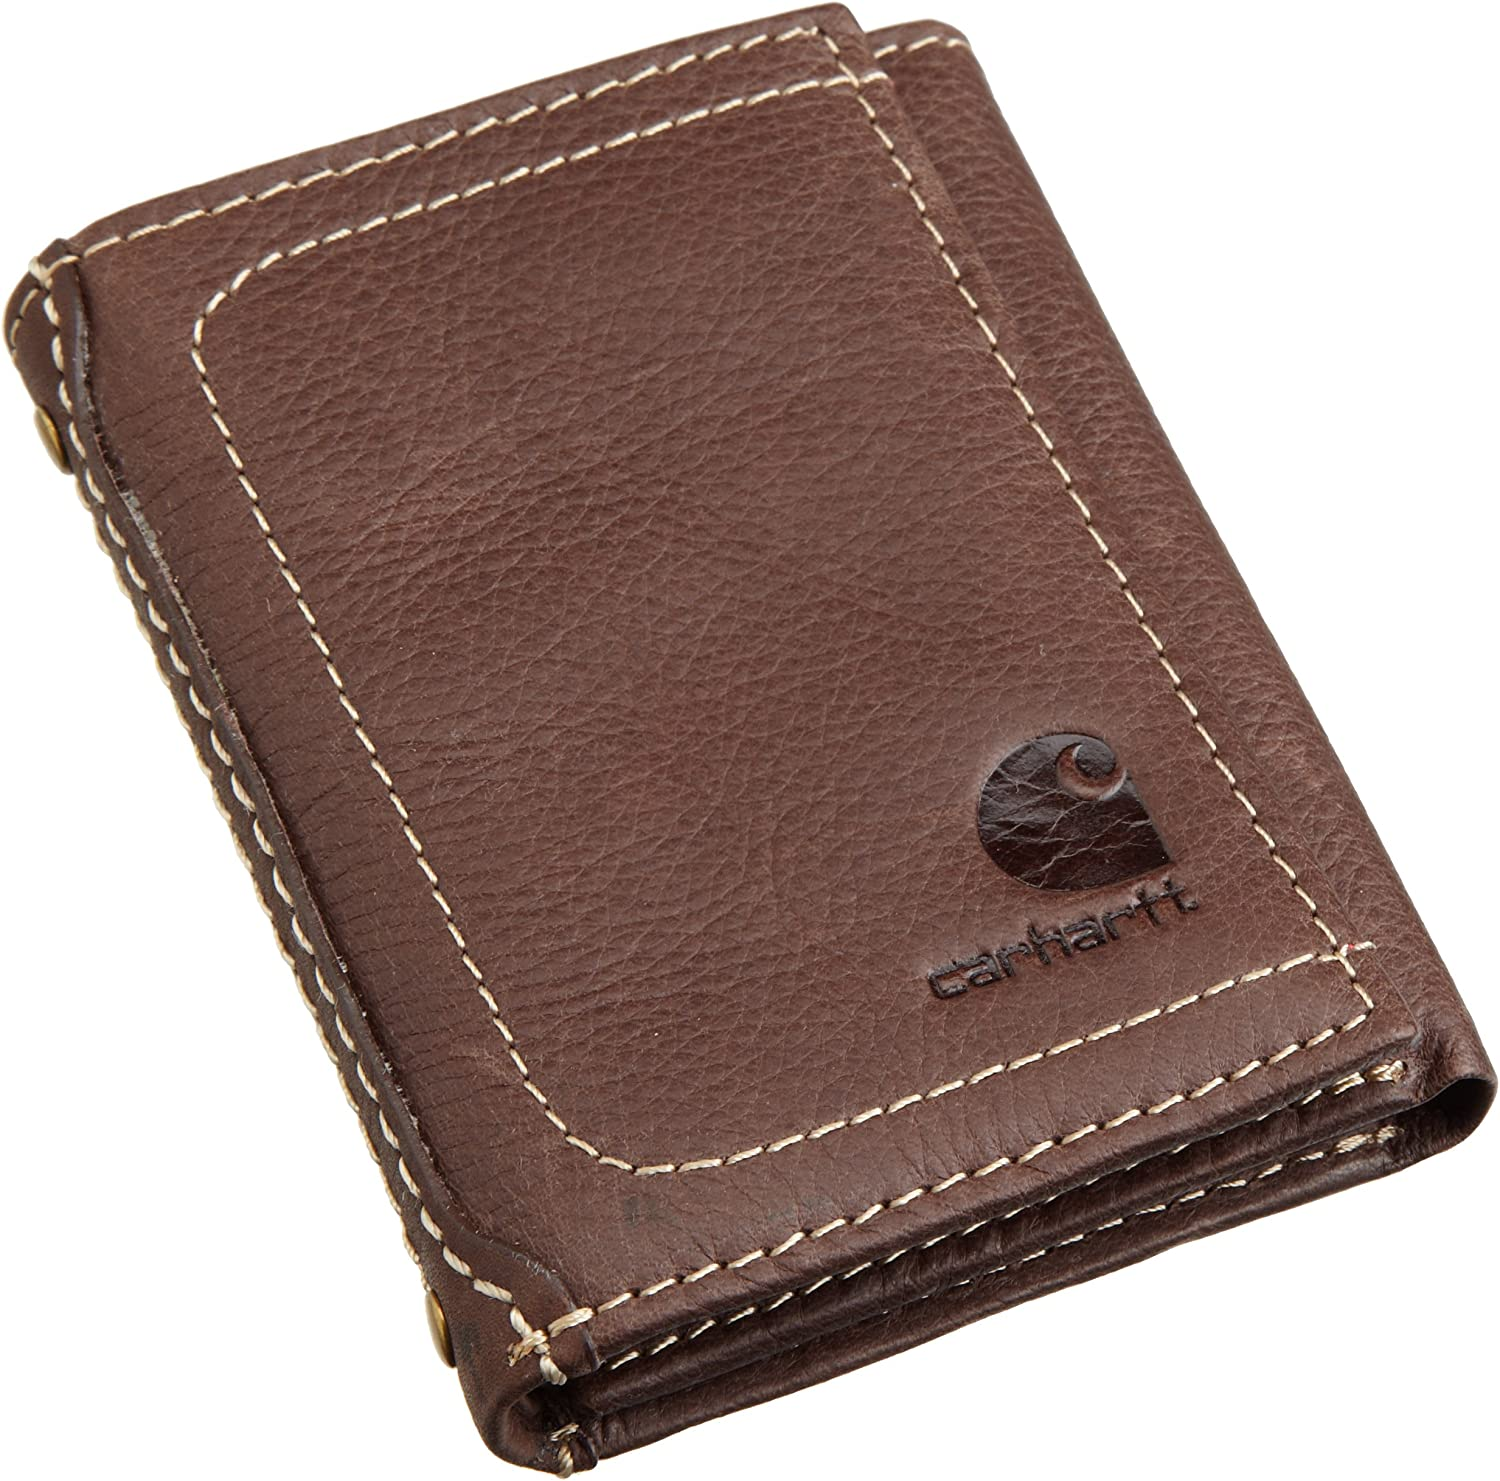 Carhartt Men's Trifold Wallet, Pebble Brown, One Size